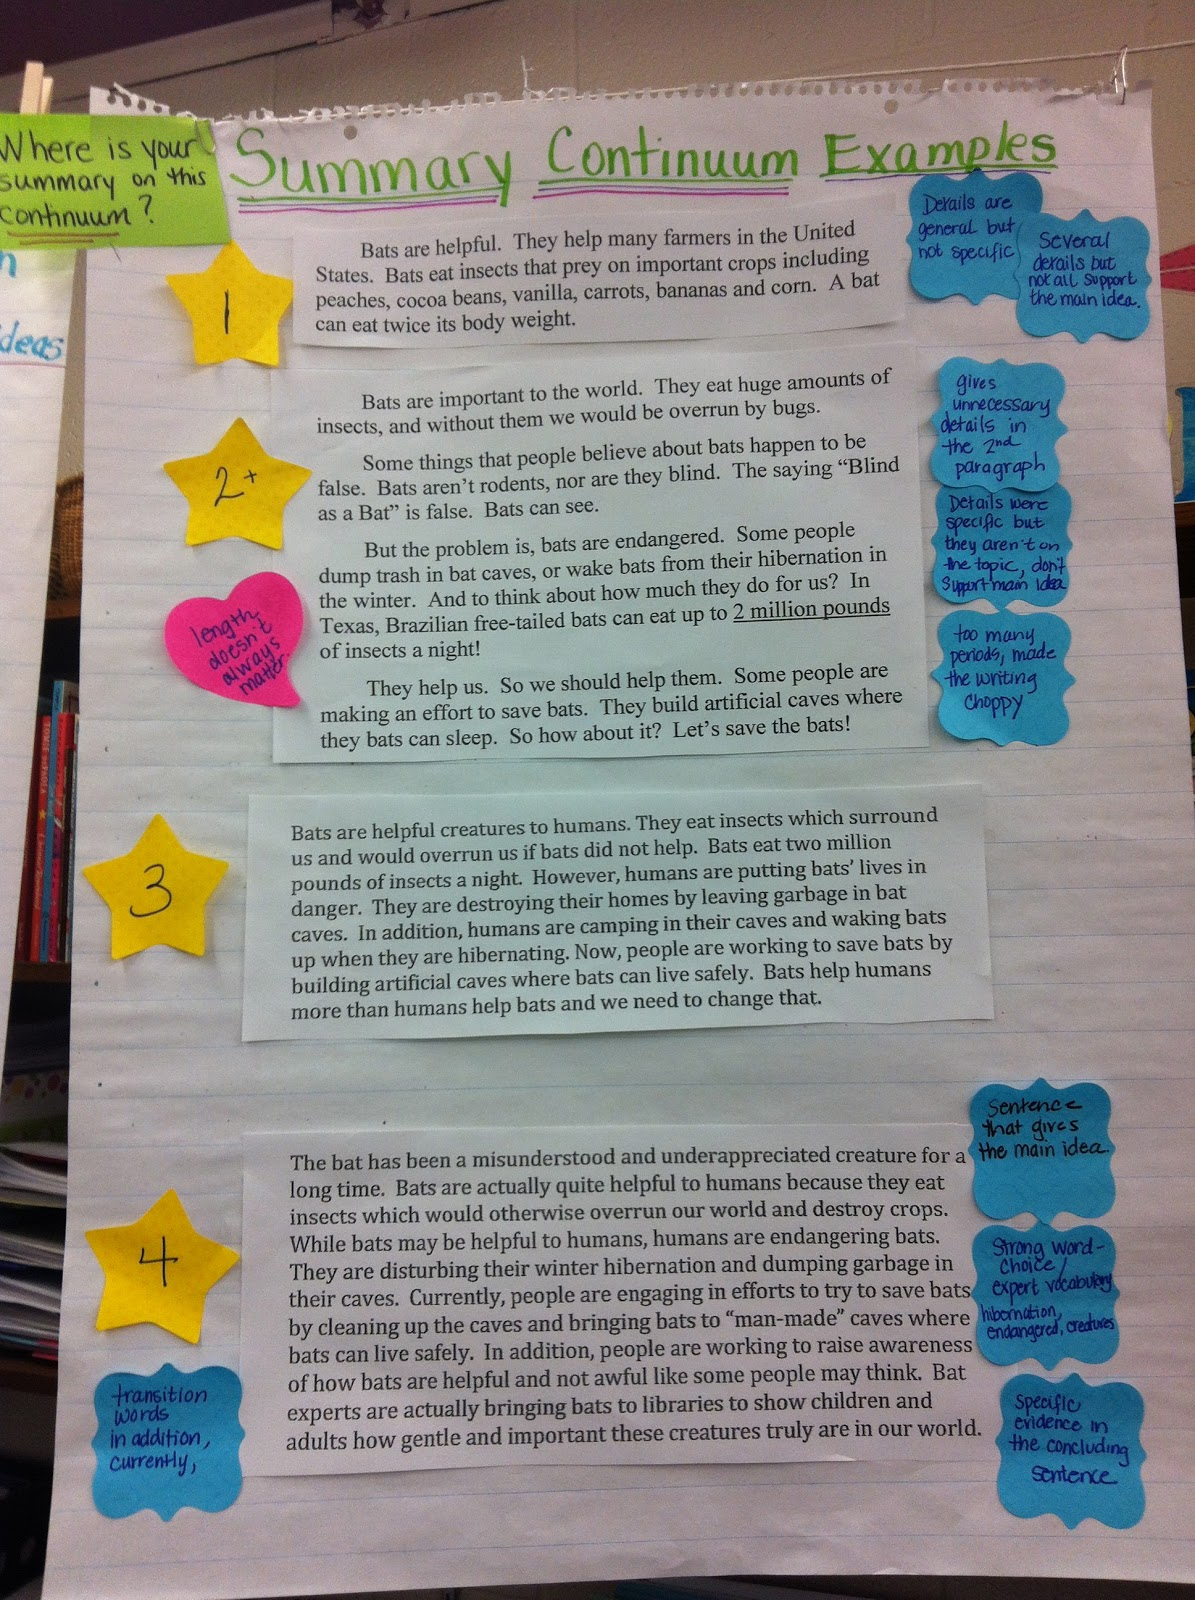 Students Went Off With Their Writing Partner To Read And Reflect On Their  Own Summaries Using The Continuum And Annotating Their Own Summaries